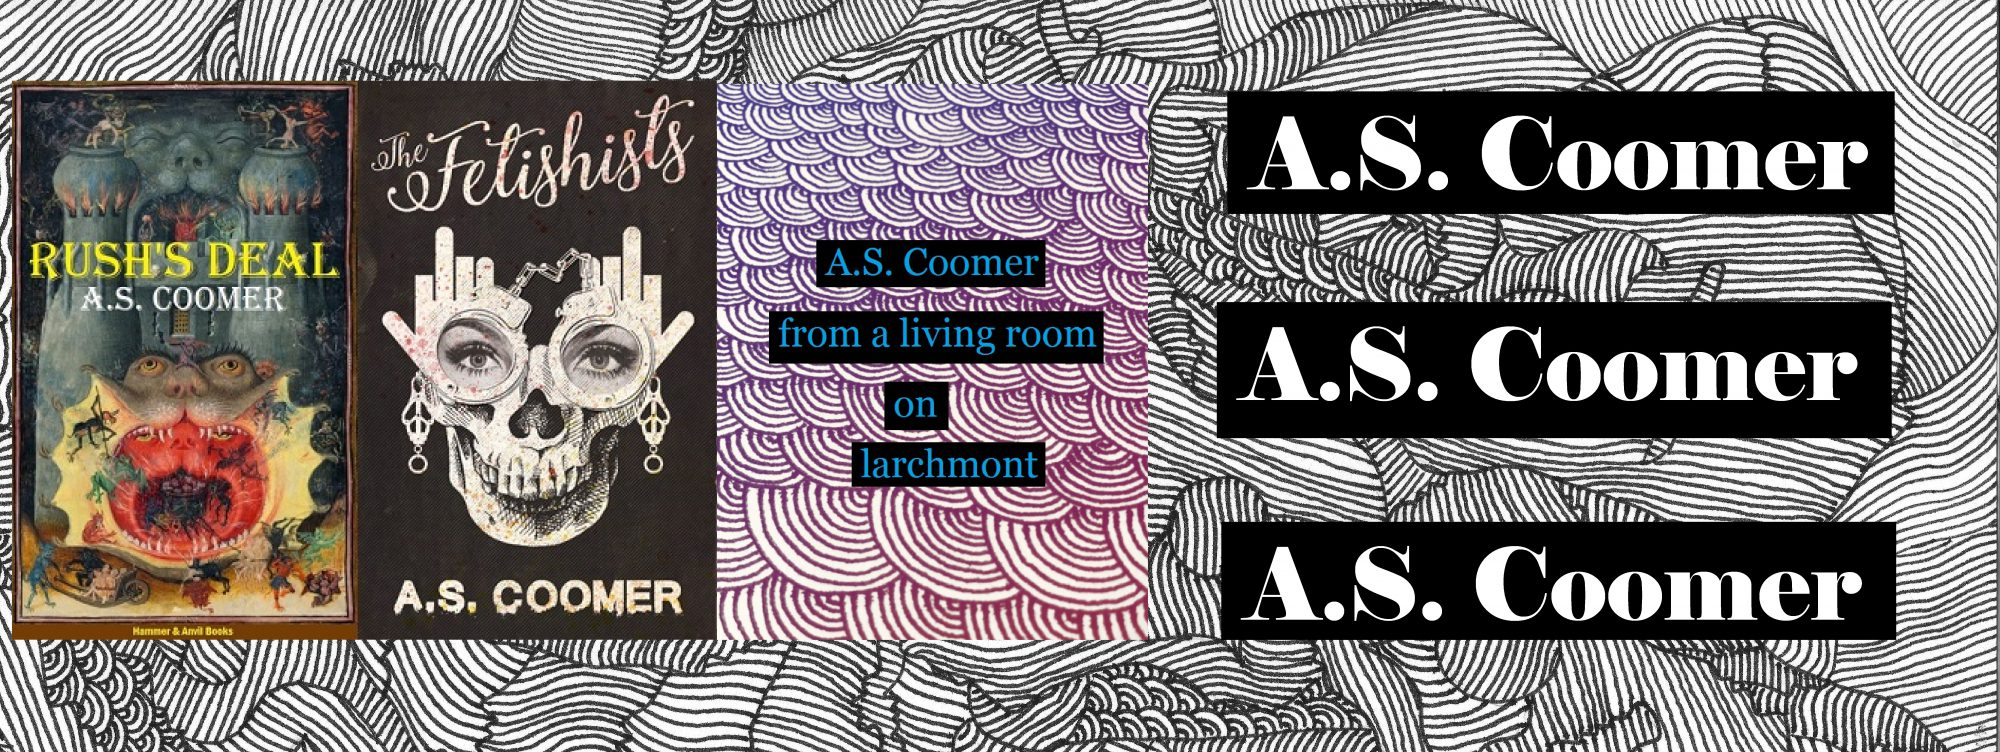 A.S. Coomer: Writer